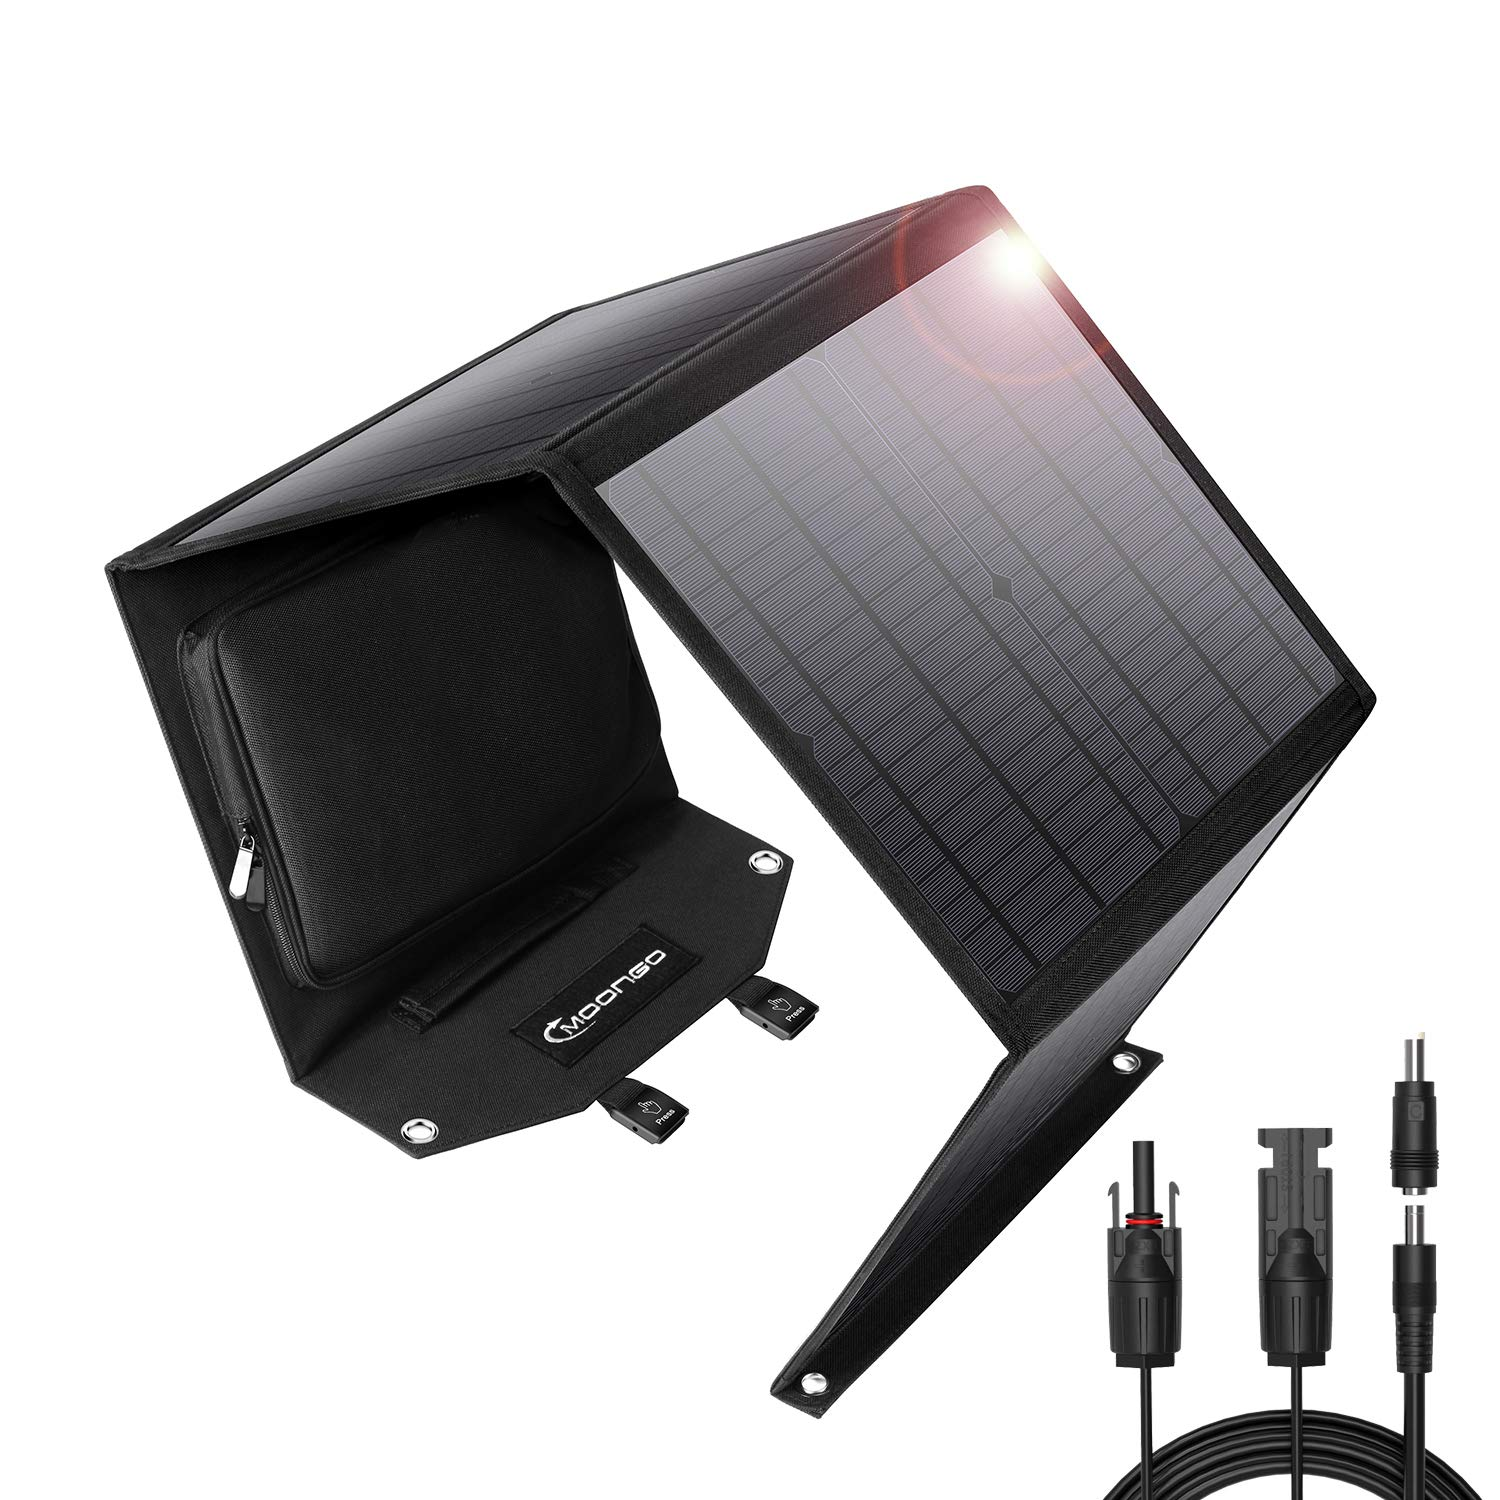 Gifts for Men, 60W Foldable Solar Panel Solar Charger for Jackery Explorer 160 Jackery Explorer 240 Suaoki Enkeeo Goal Zero Yeti Rockpals Portable Power Station and USB Devices by Moongo